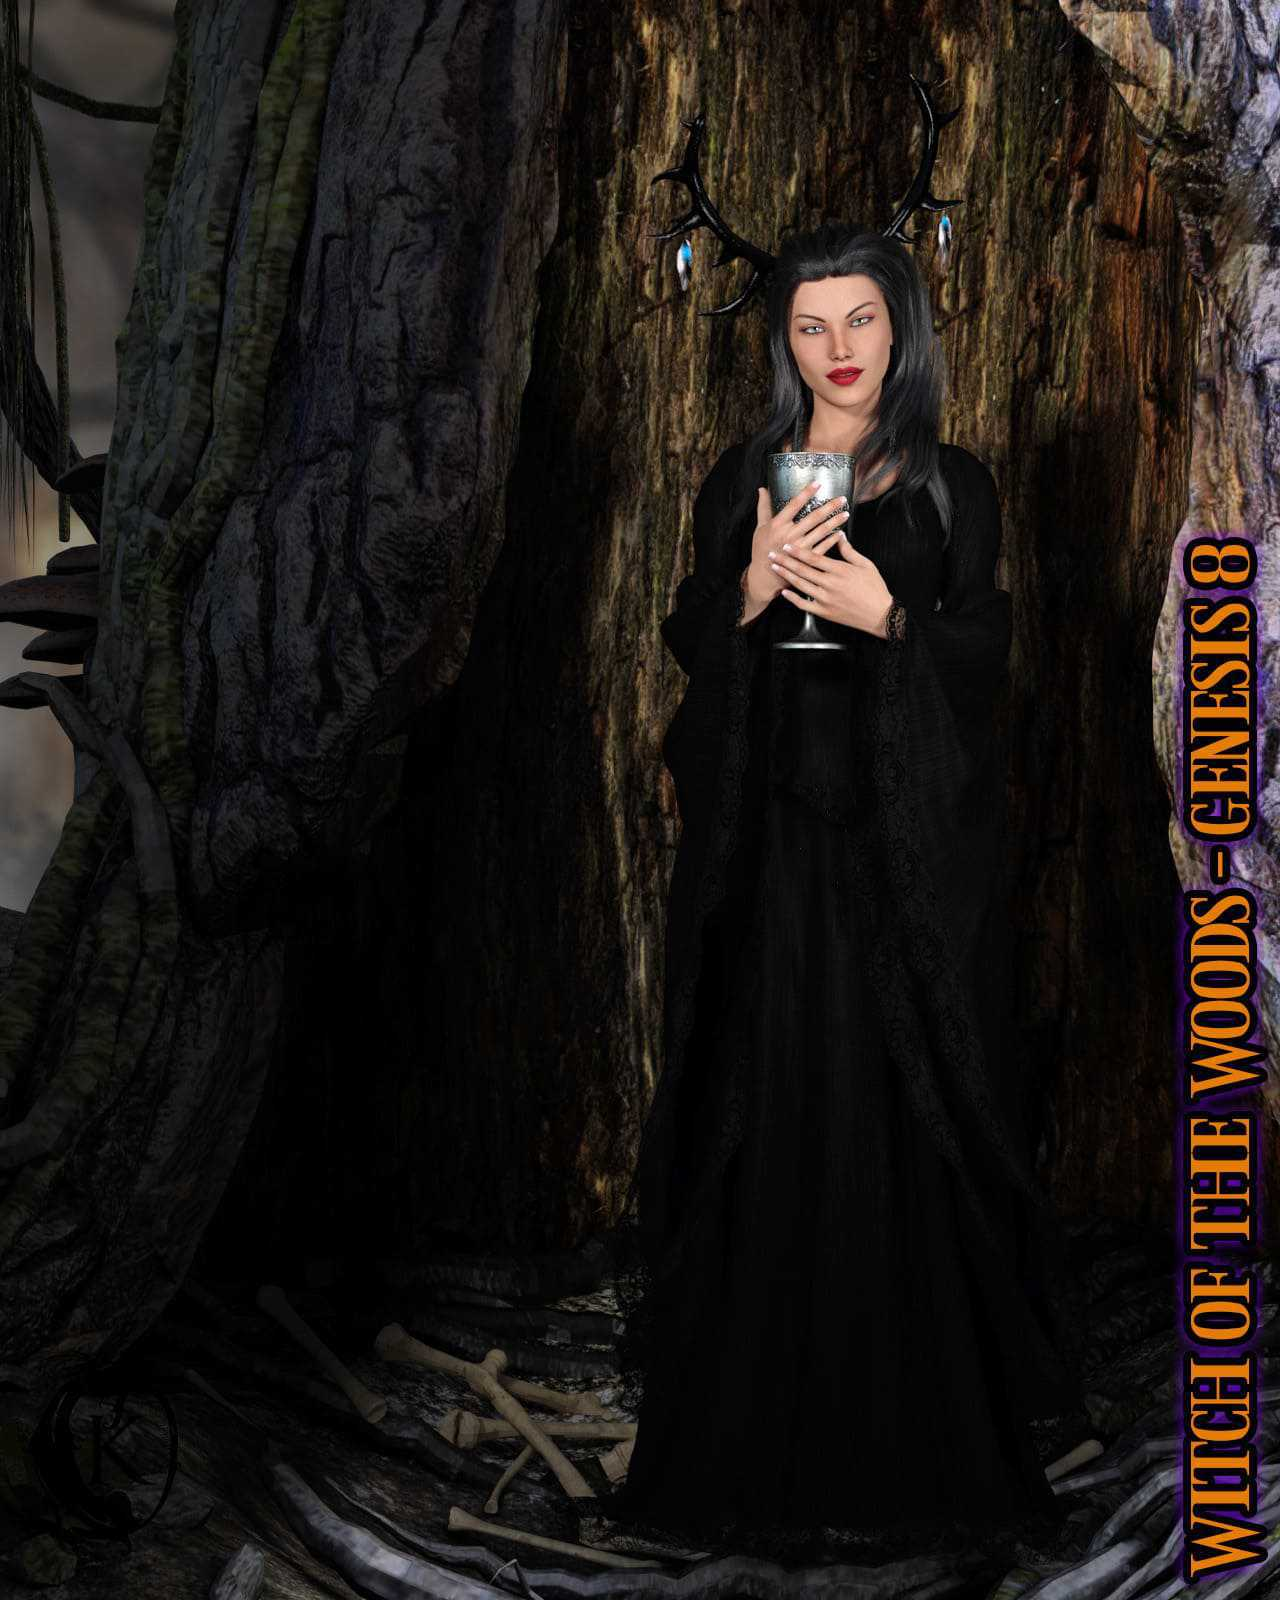 dforce – Witch of the Woods – Genesis 8